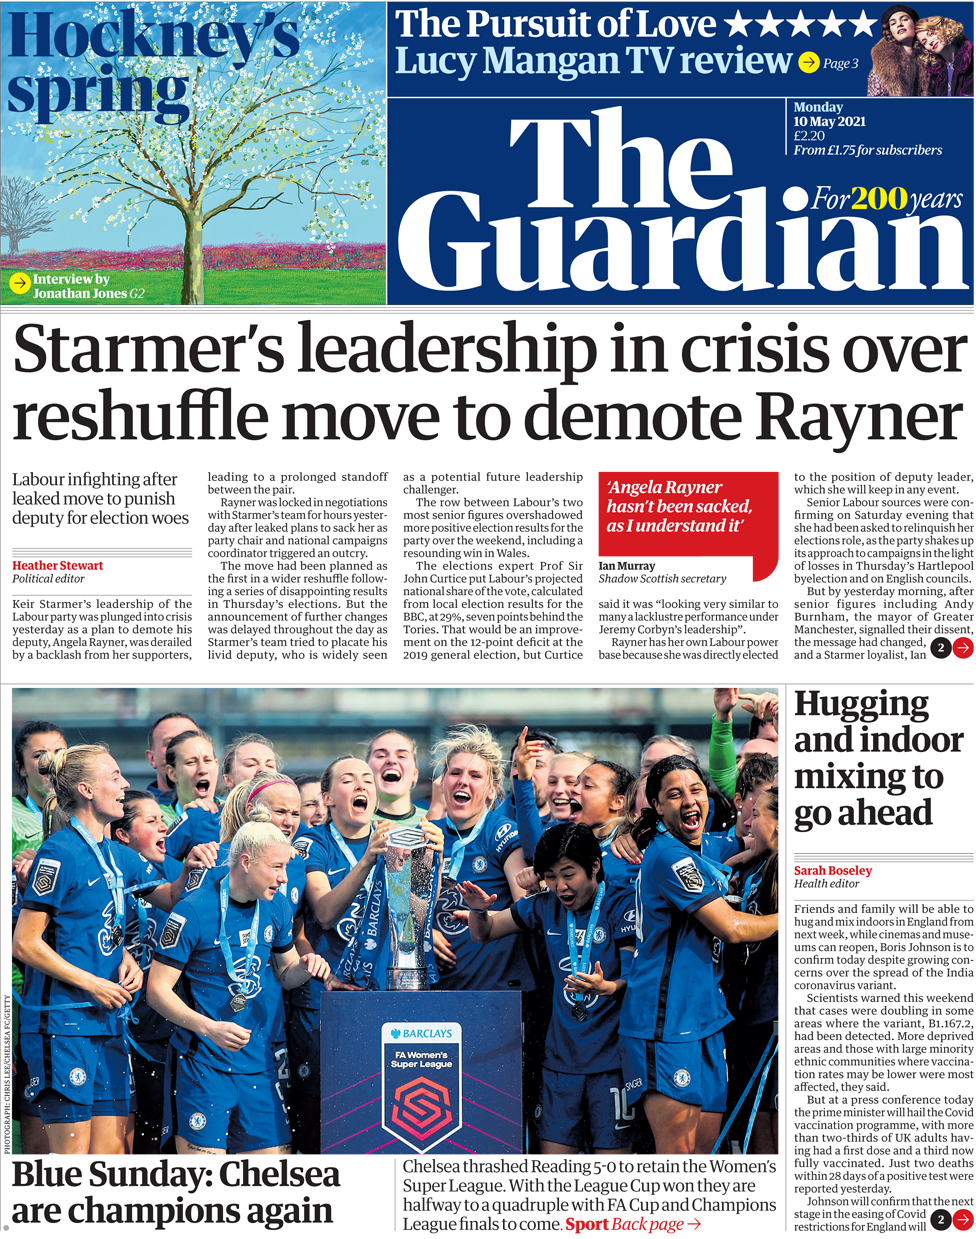 The guardian front page 10 May 2021